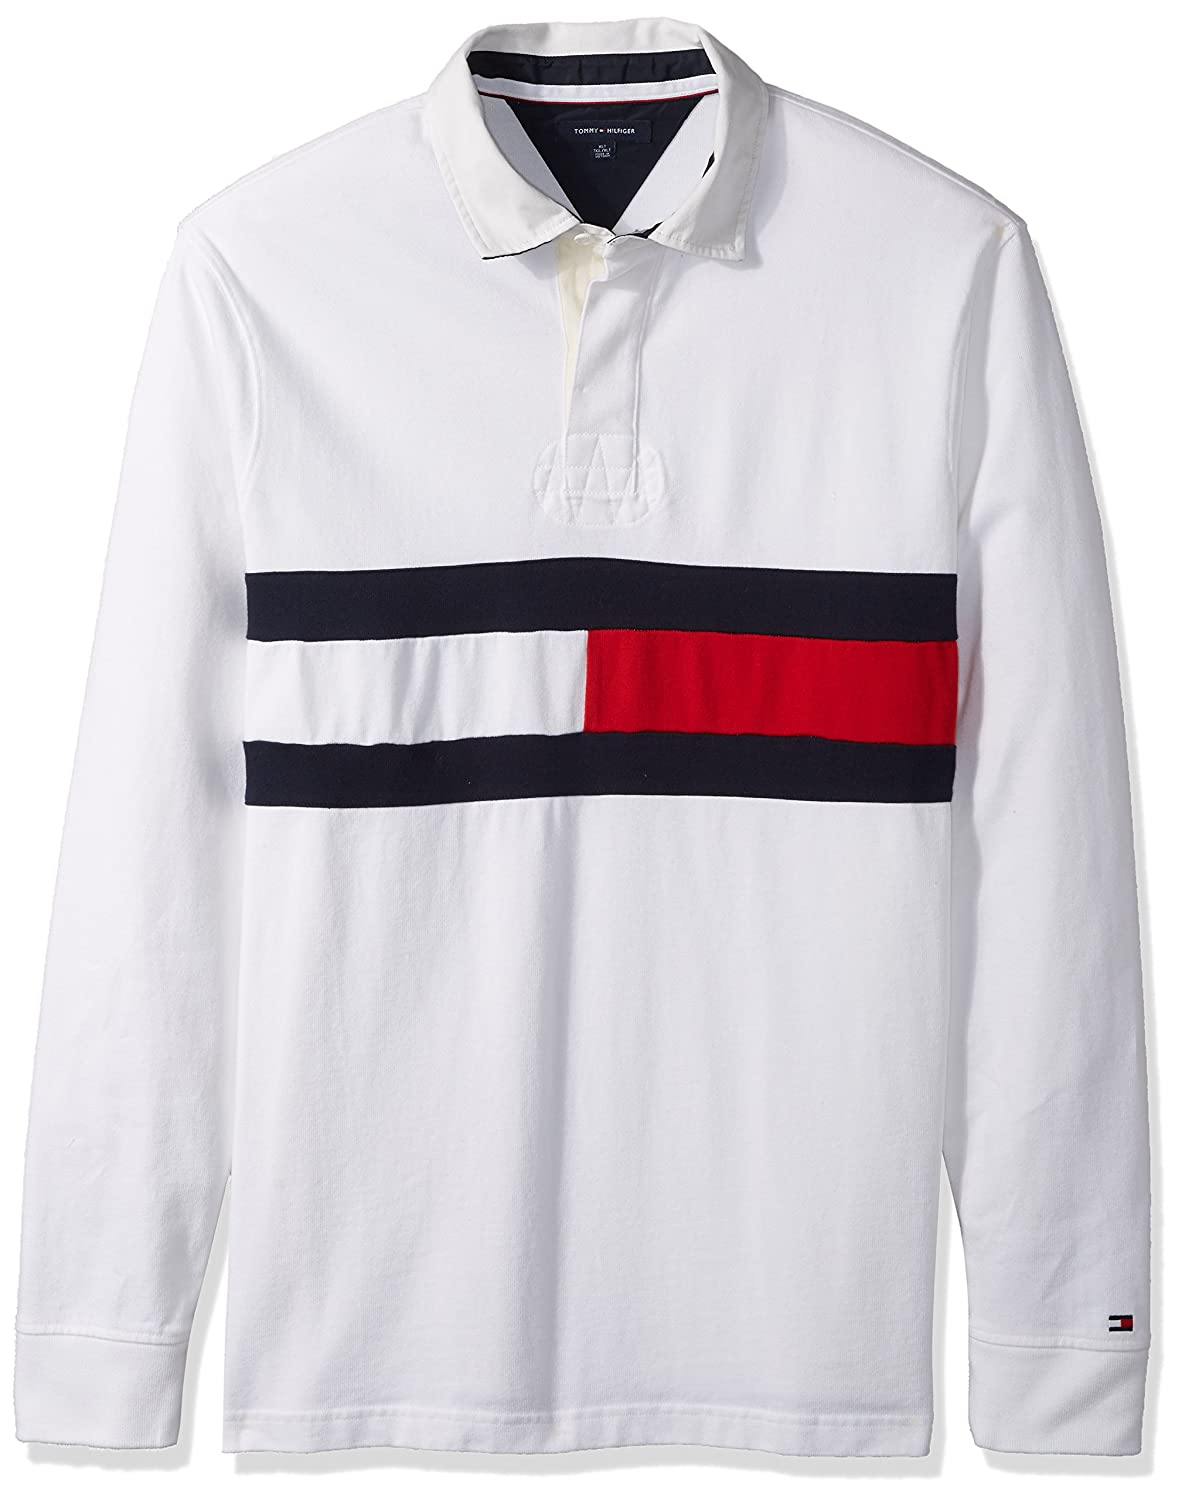 Amazon Com Tommy Hilfiger Men S Big And Tall Long Sleeve Polo Shirt